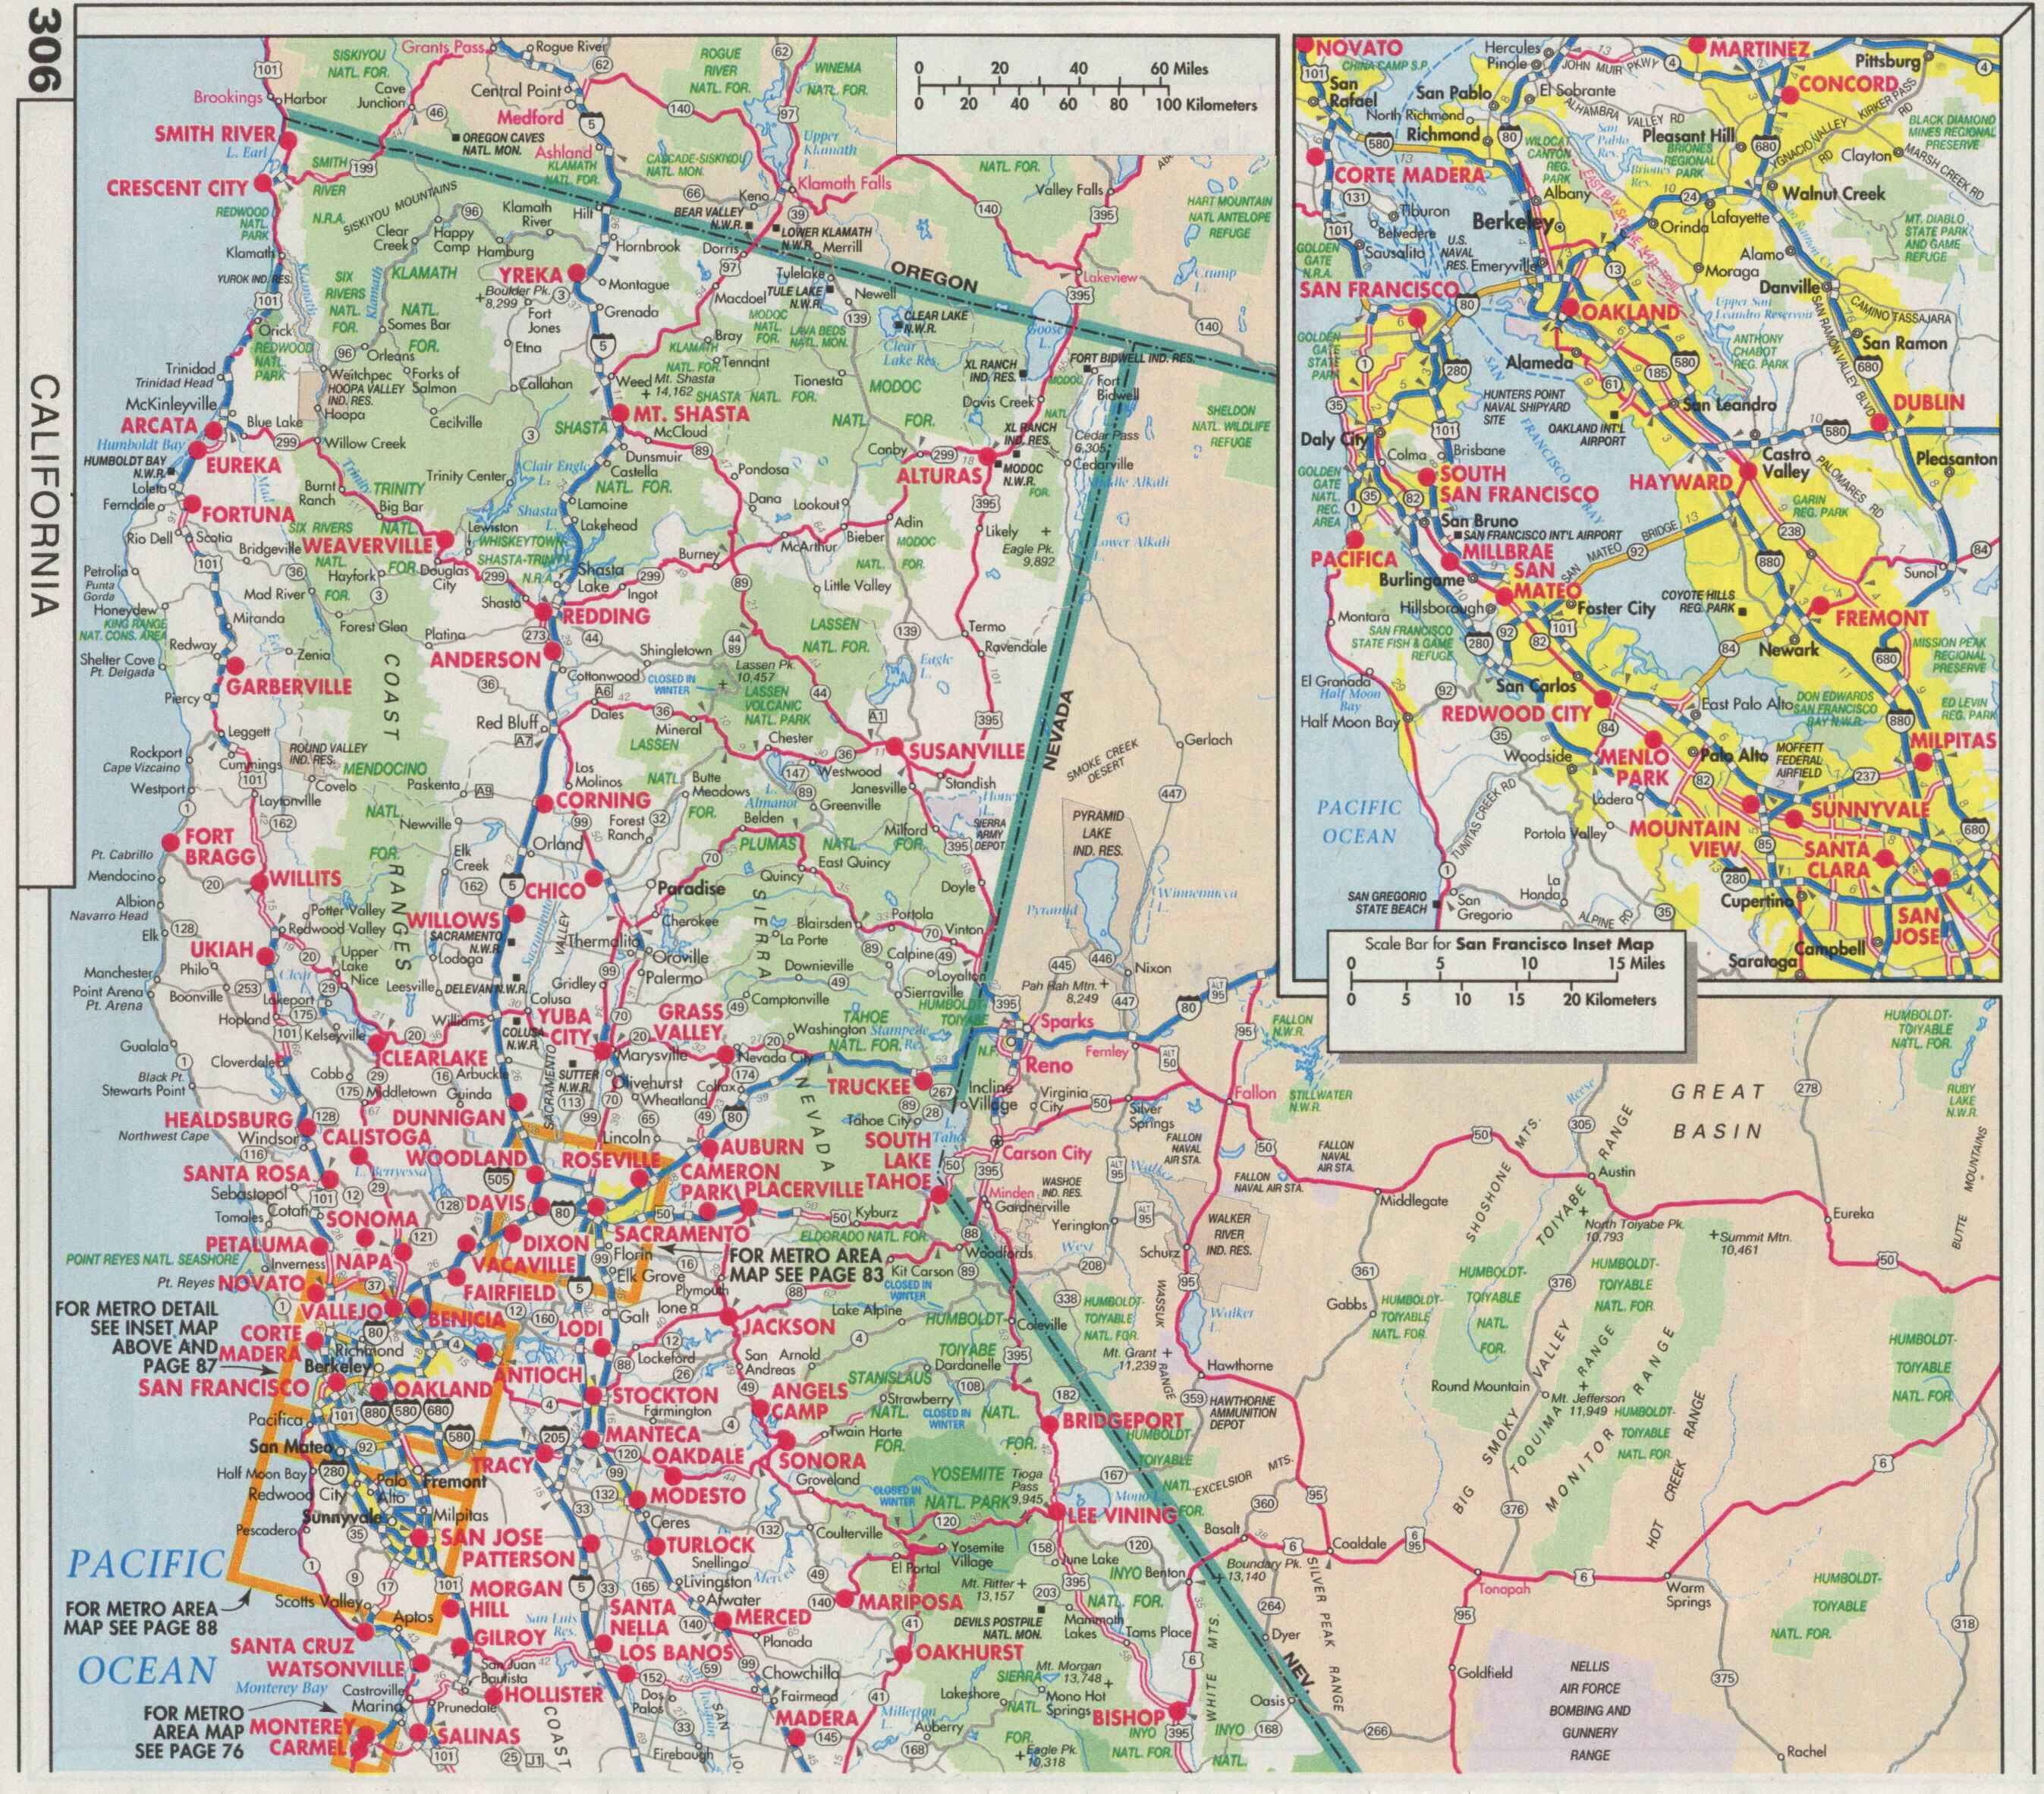 Highway Map Of Northern California - Klipy - Detailed Road Map Of Northern California